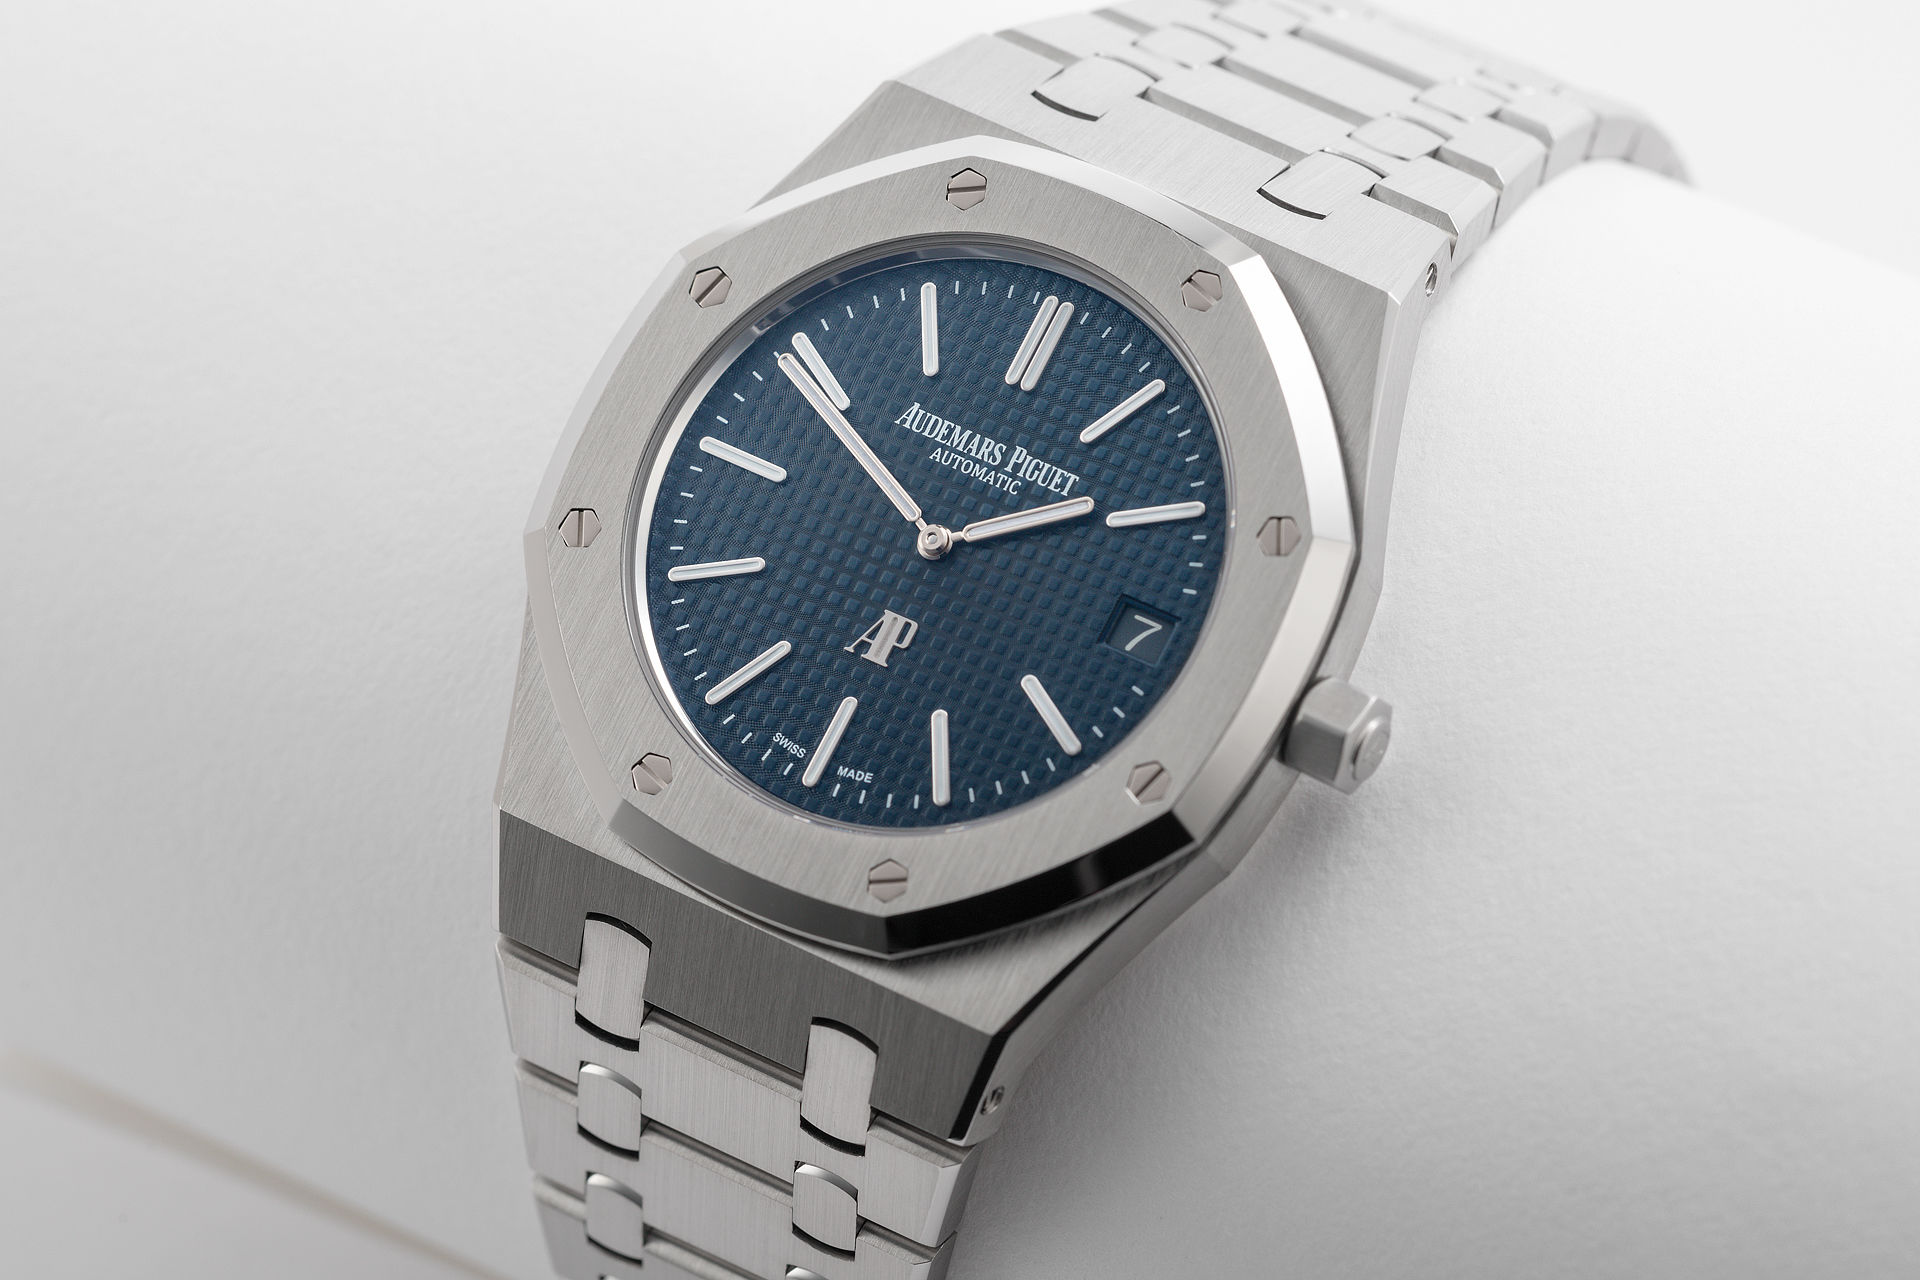 ref 15202ST.OO.1240ST.01 | Blue Dial Jumbo Complete Set | Audemars Piguet Royal Oak